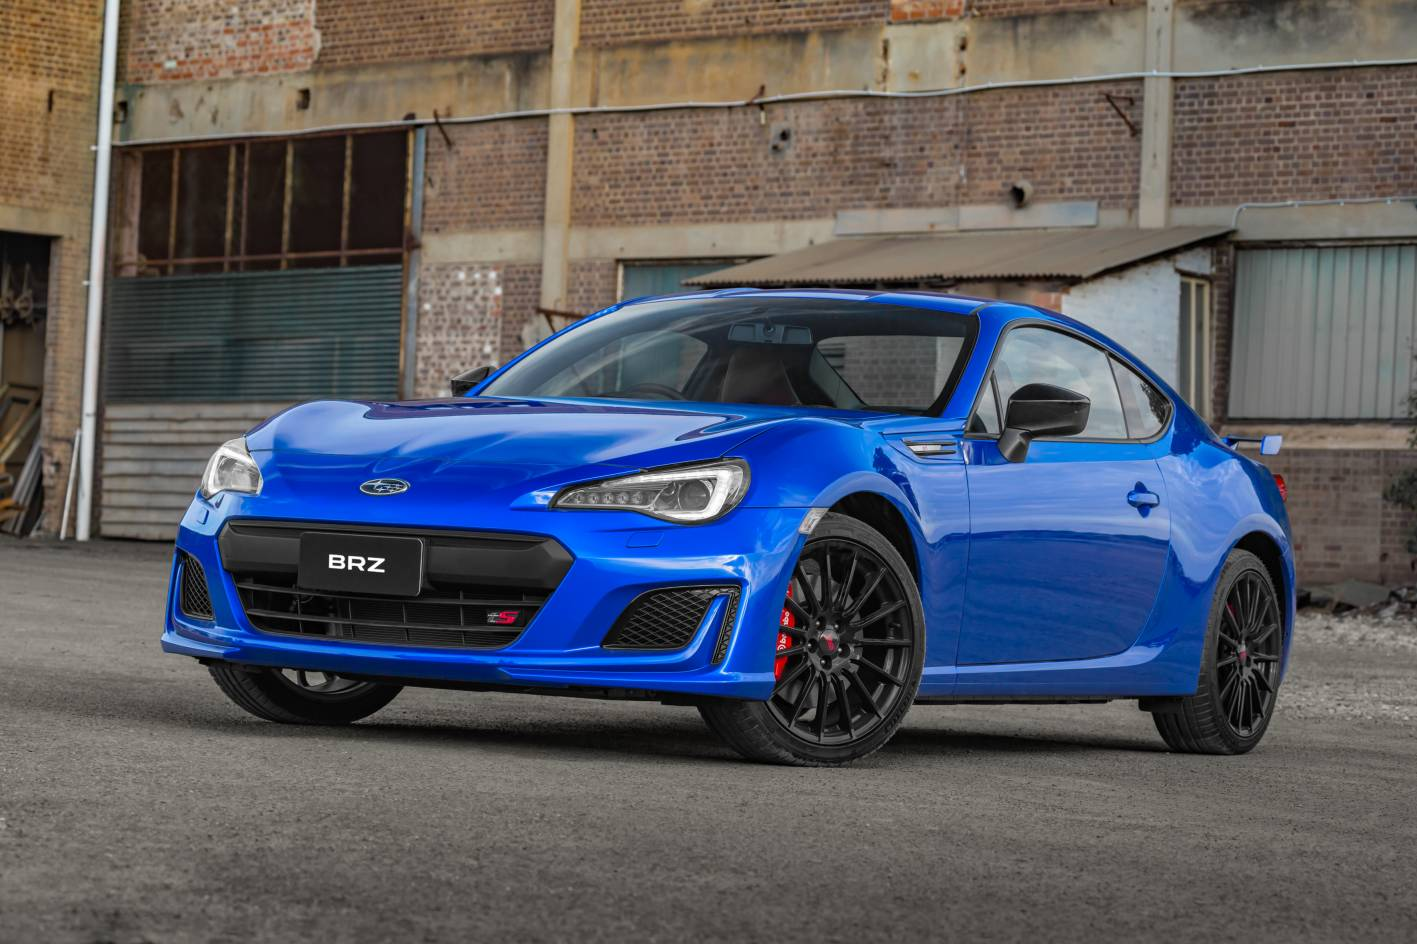 2017 Subaru Brz Limited >> Subaru BRZ tS launched as new range-topper with STI goodies - ForceGT.com